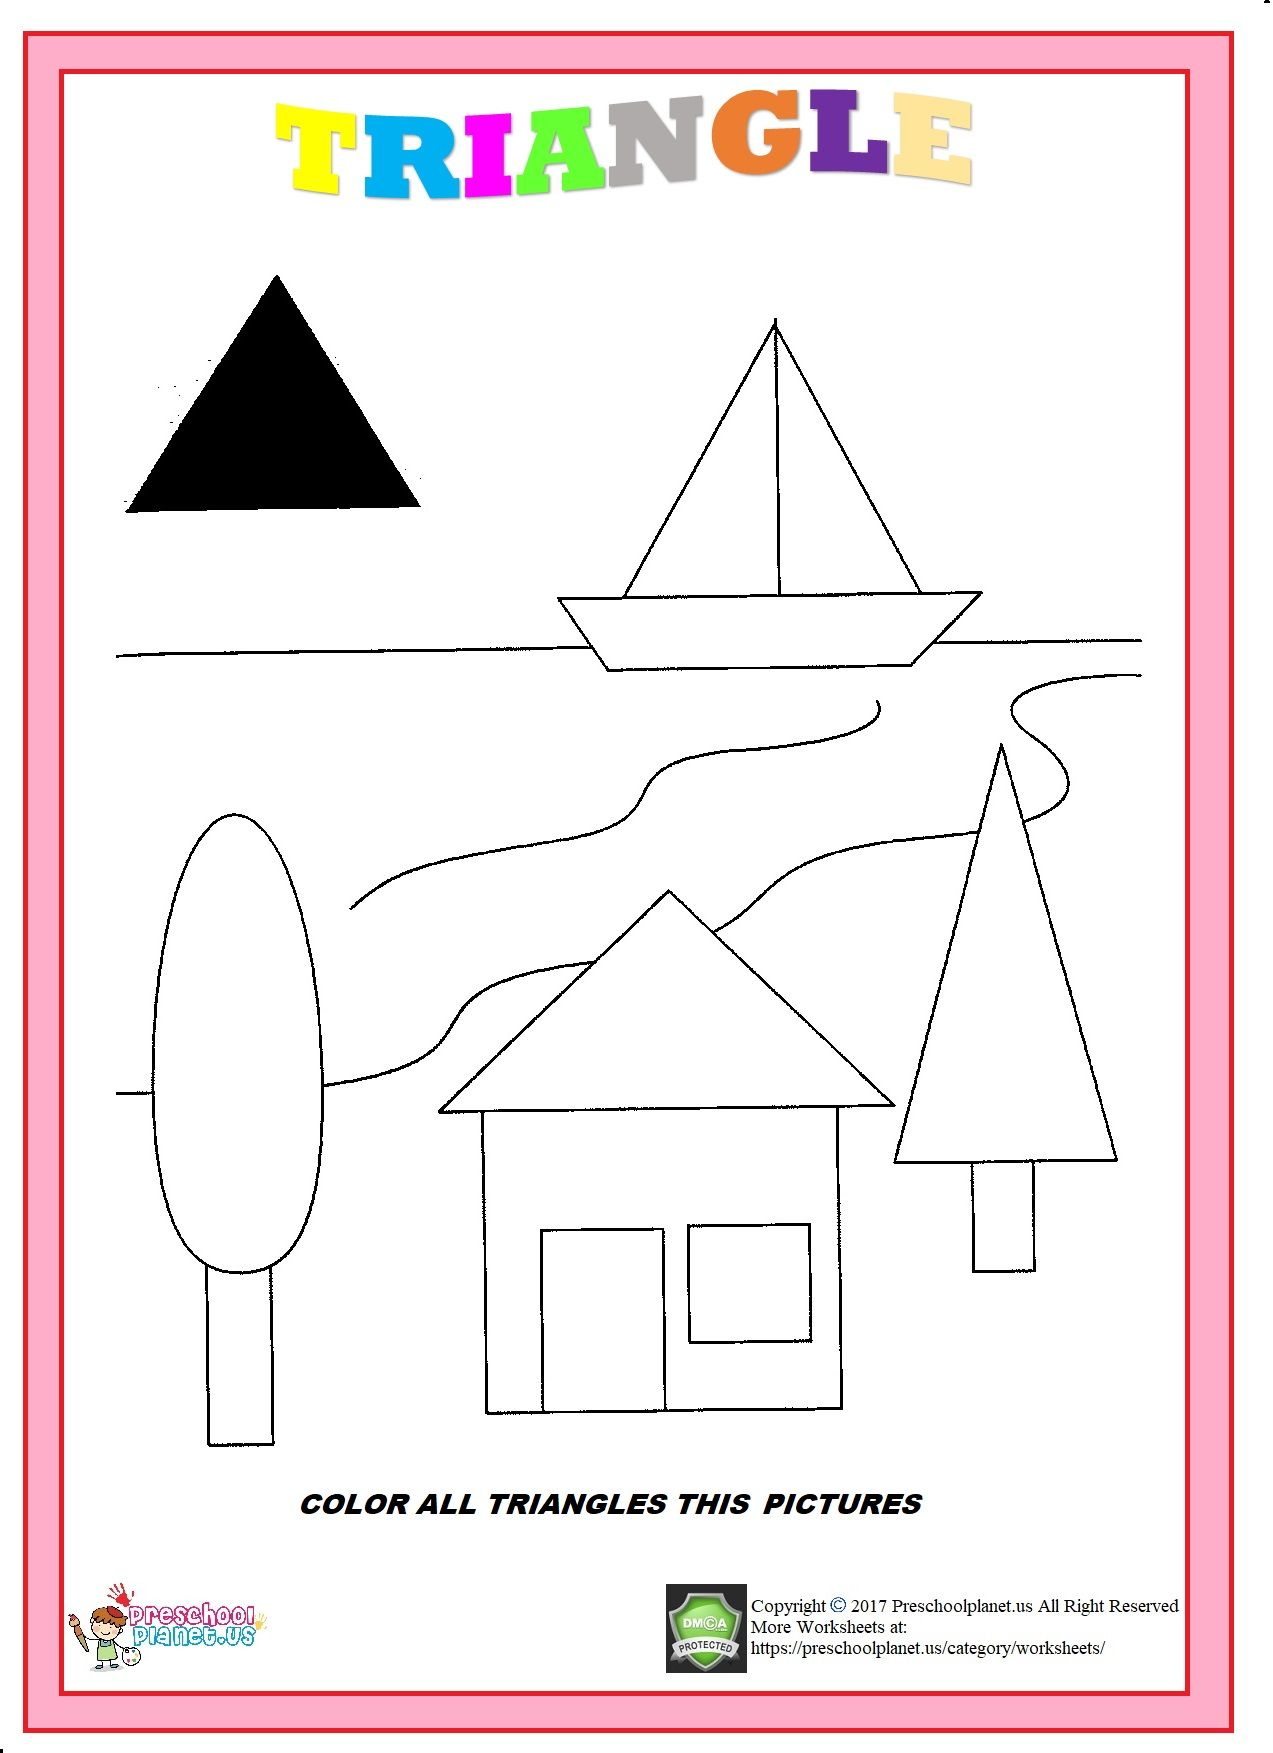 Triangle Worksheet | Worksheet for kids | Triangle ...